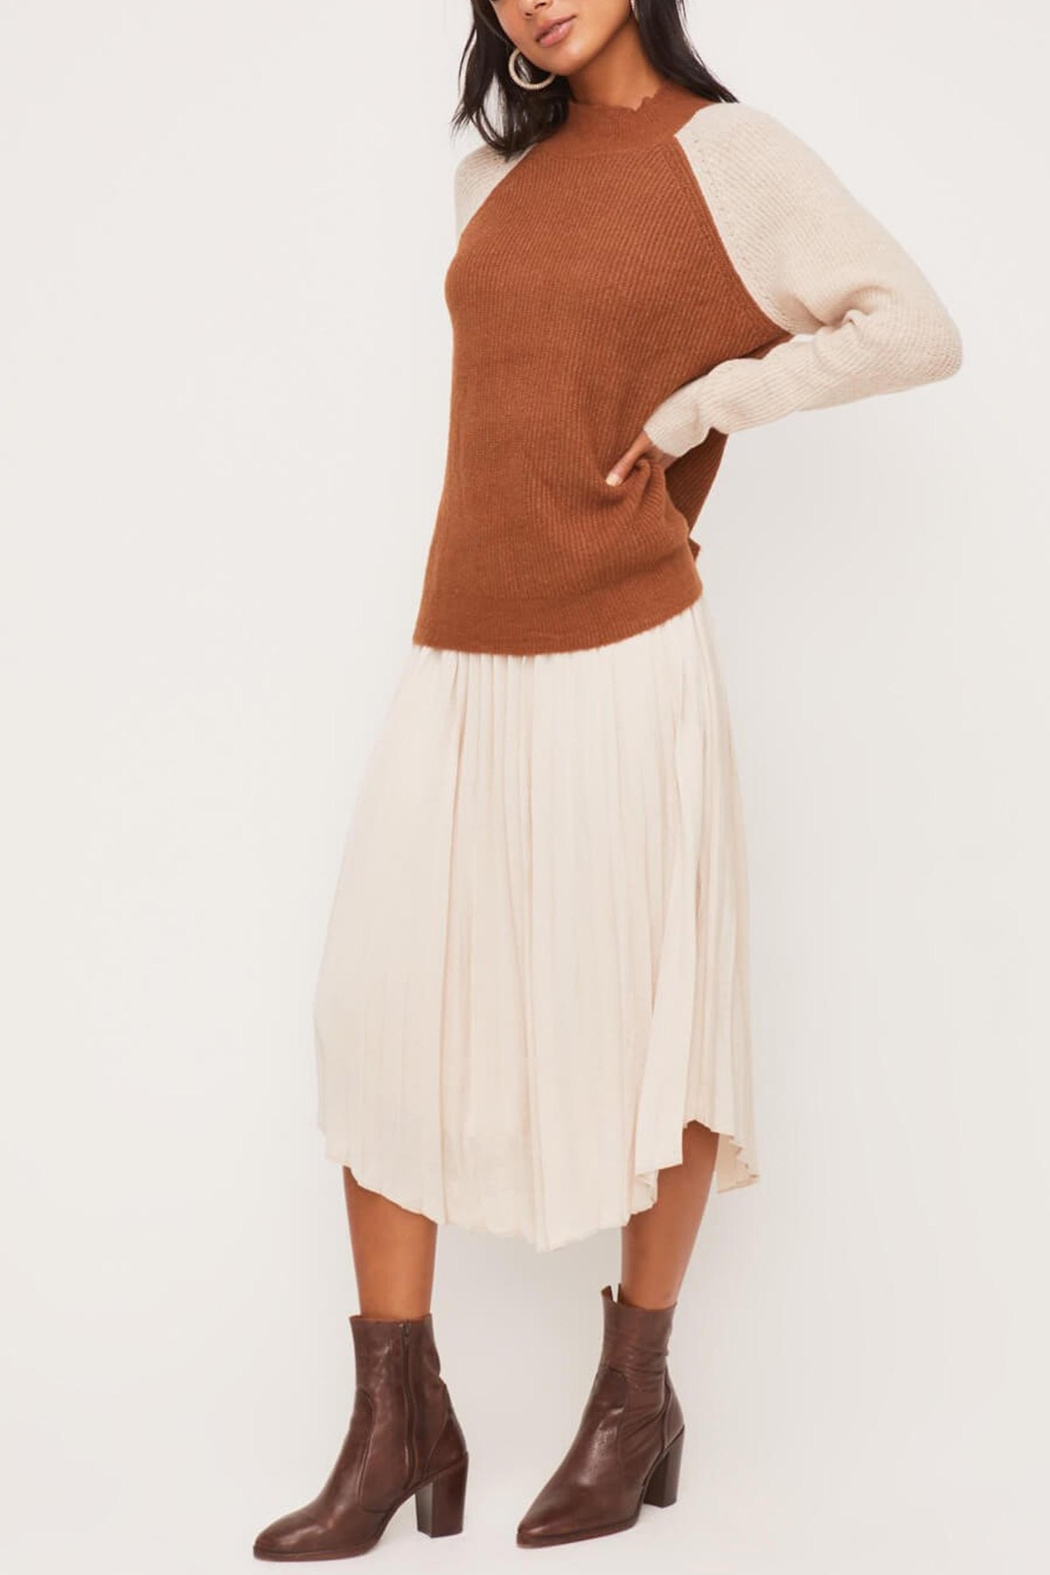 Lush Clothing  Colorblock Crew-Neck Sweater - Side Cropped Image